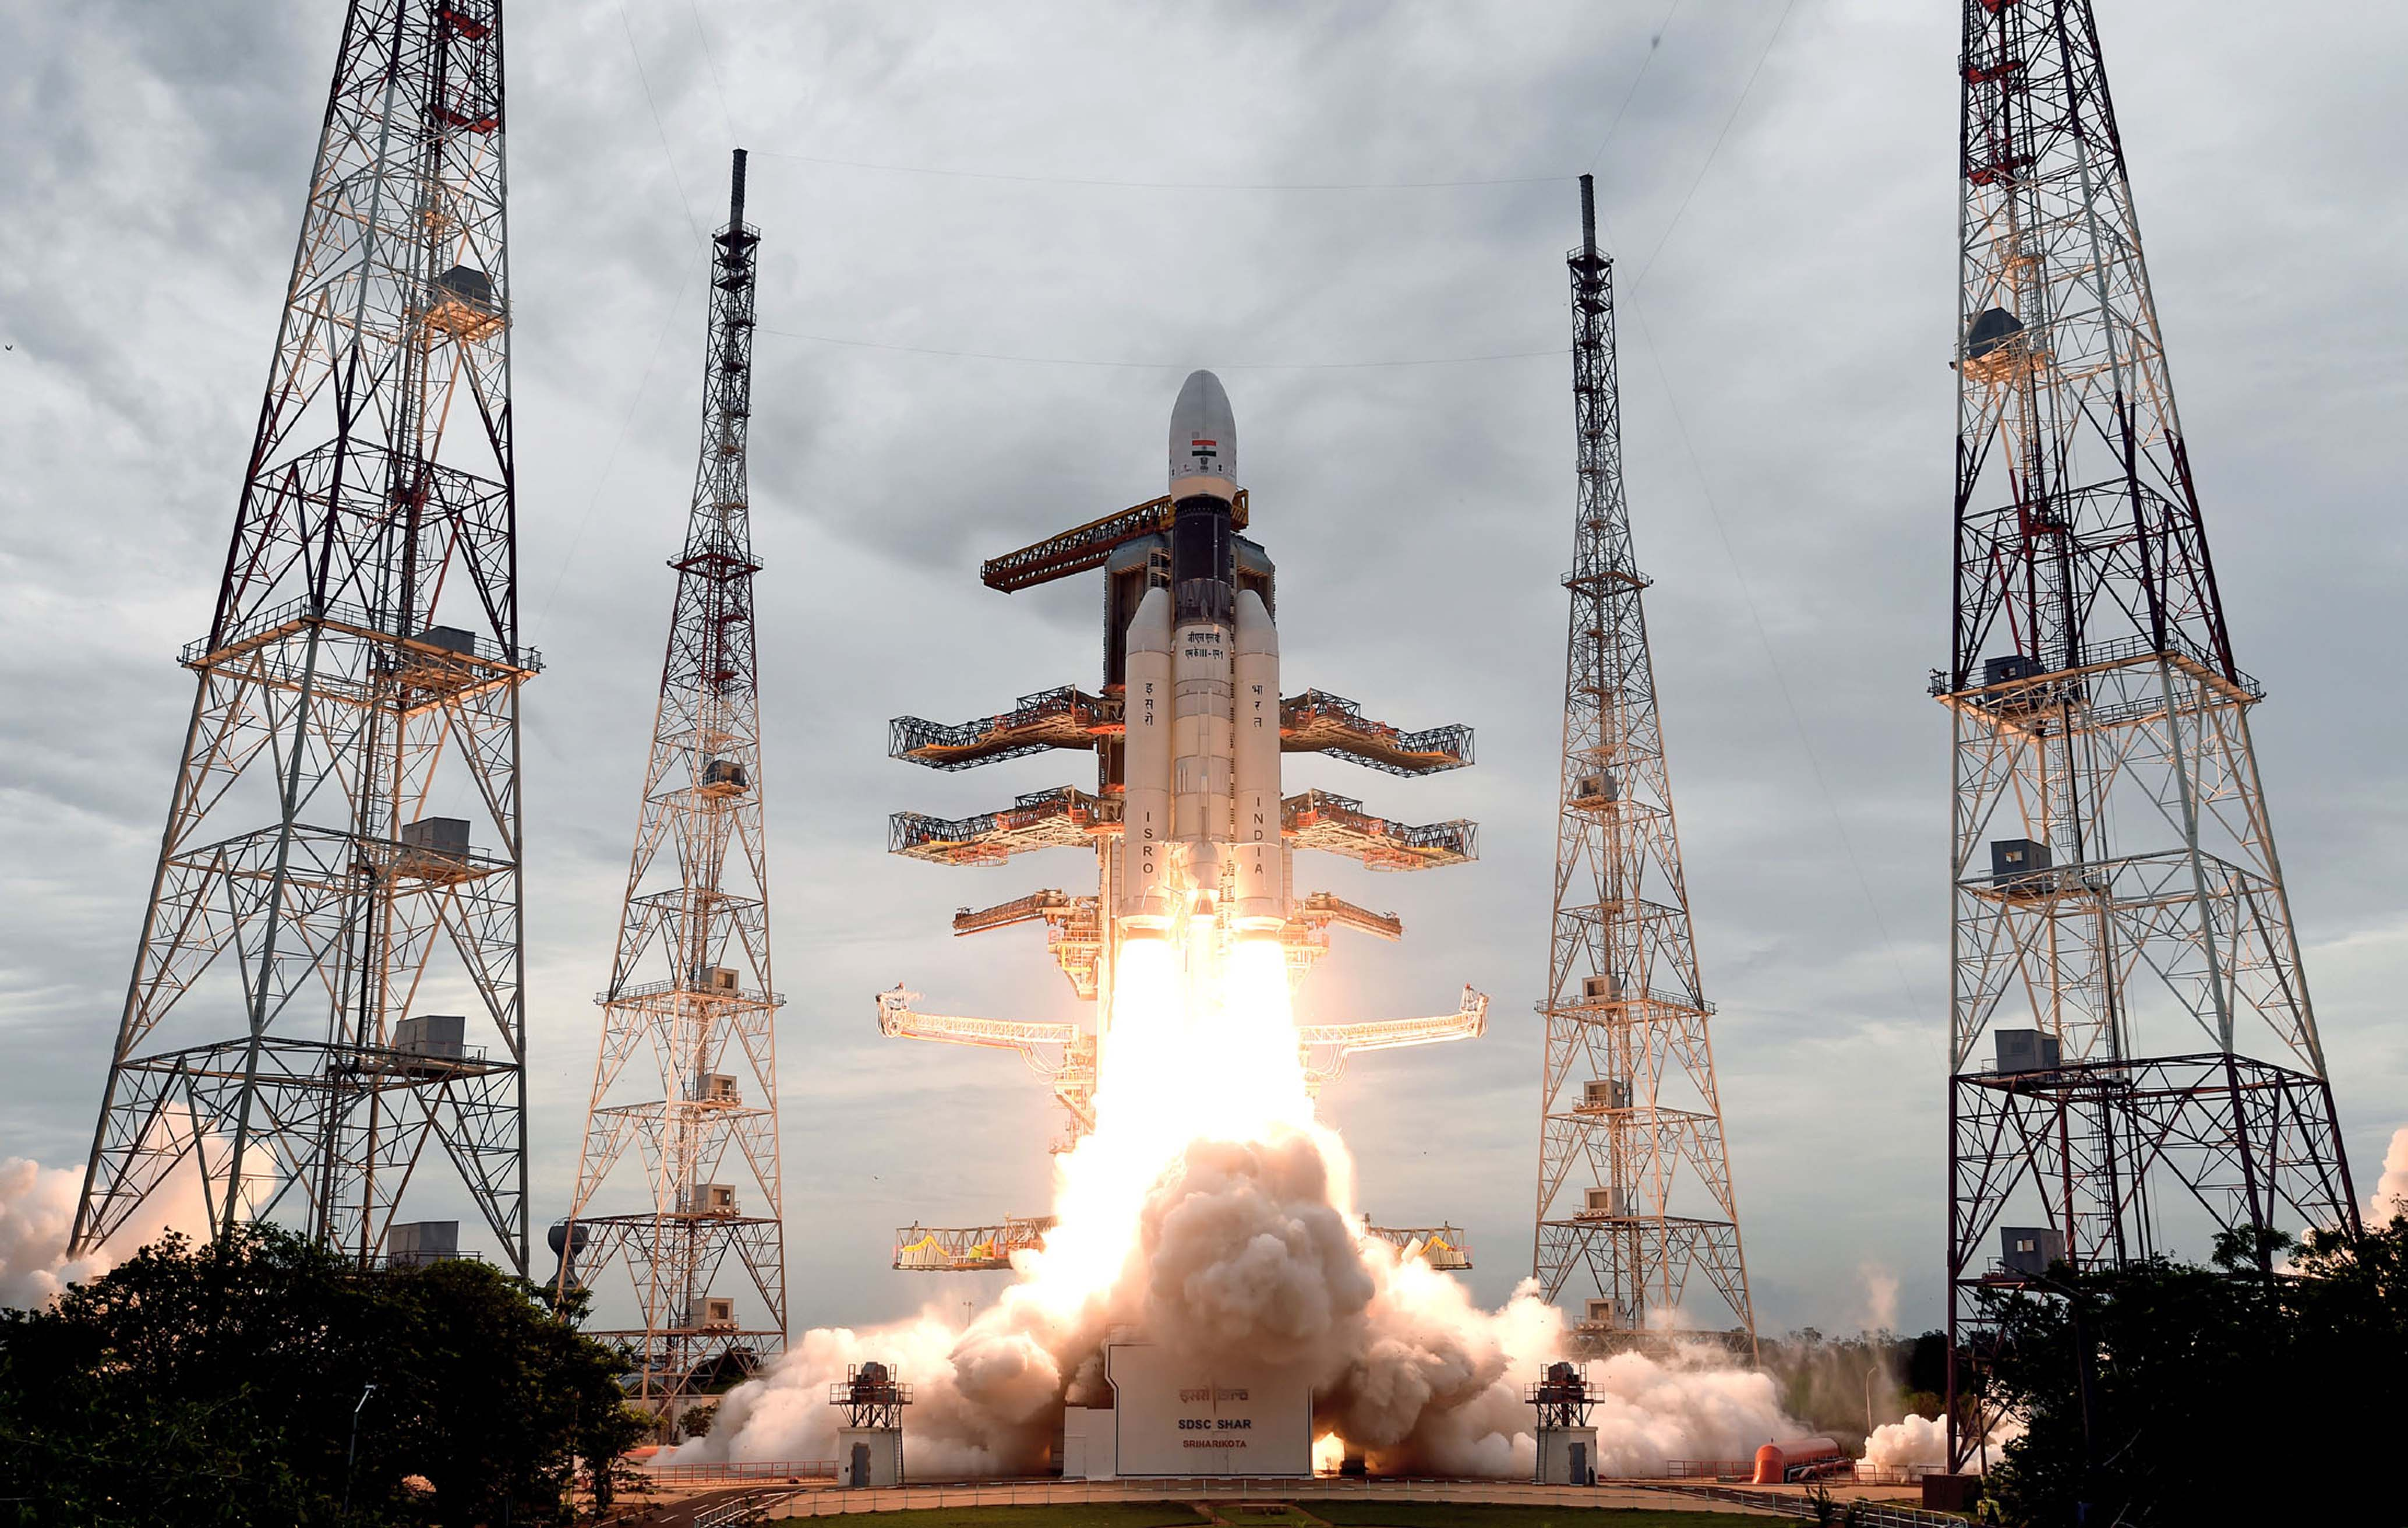 Geosynchronous Satellite Launch Vehicle, GSLV MkIII-M1 rocket, carrying Chandrayaan-2 spacecraft, lifting off from the Second Launch Pad at the Satish Dhawan Space Centre, Sriharikota, in Andhra Pradesh on Monday.